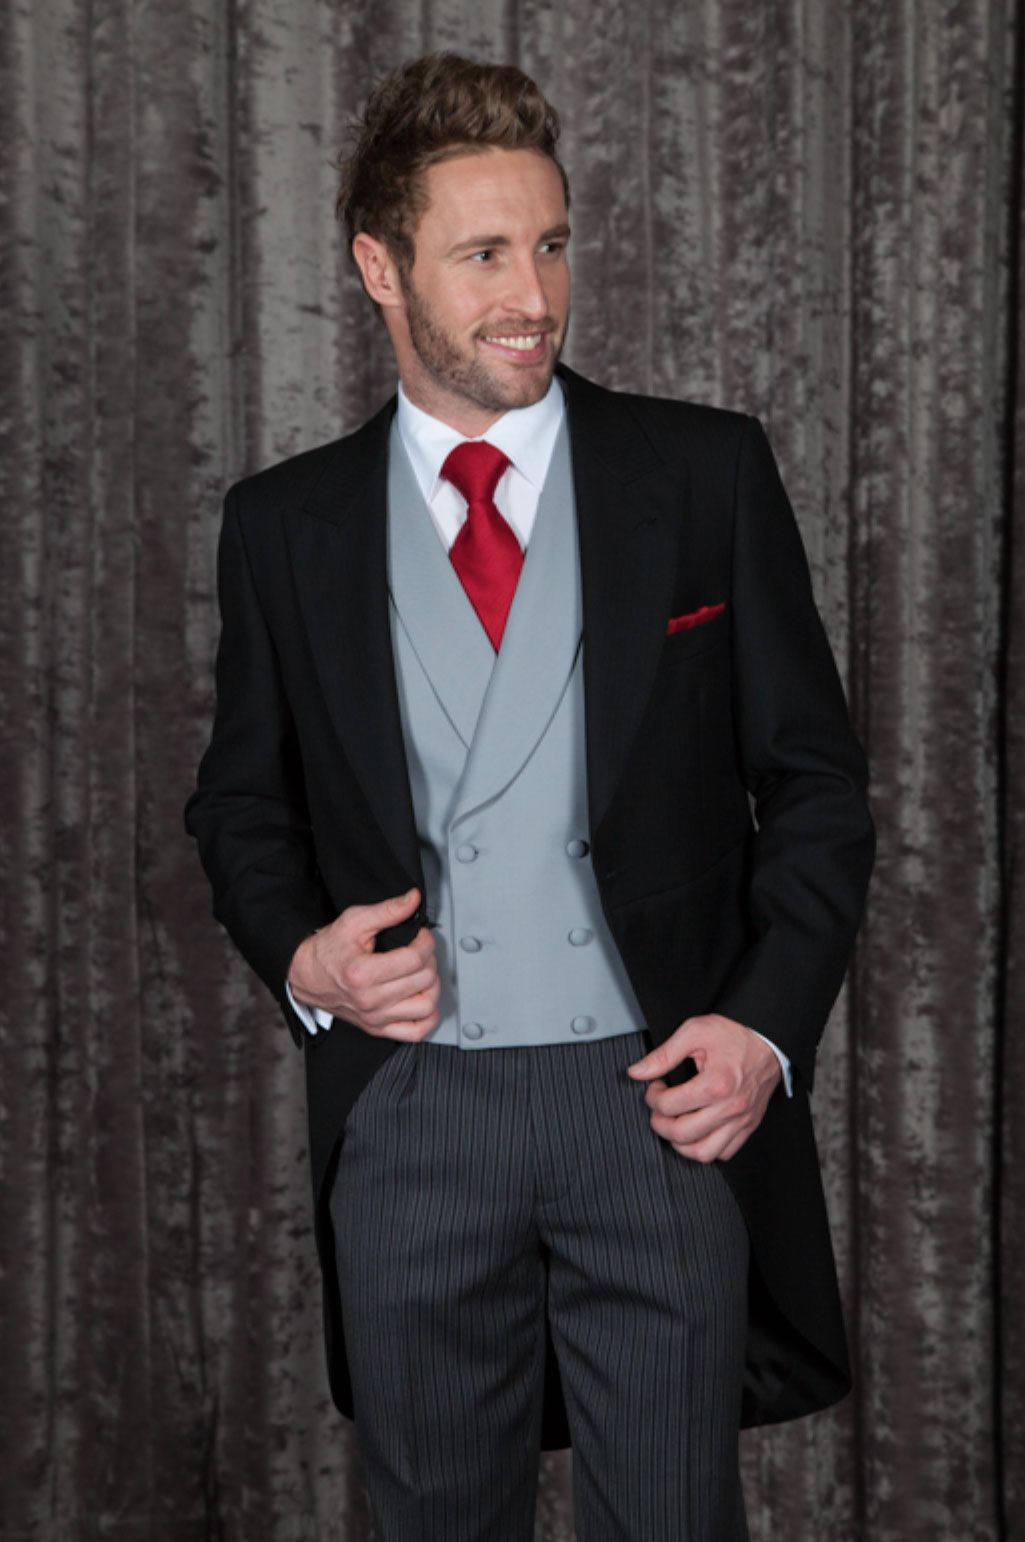 Traditional Morning Tail Coat for the Groom or Ascot at